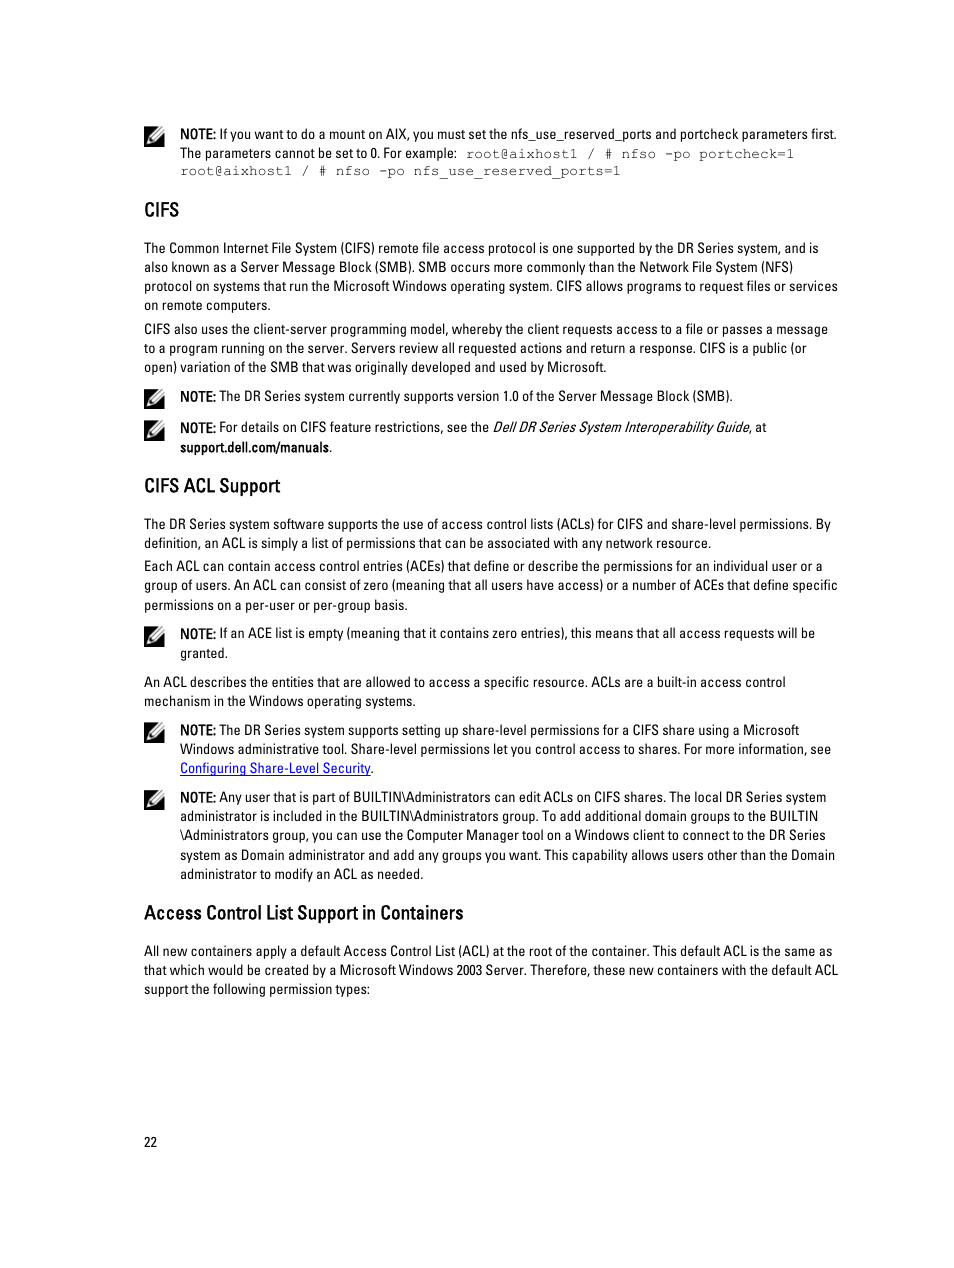 Cifs, Cifs acl support, Access control list support in containers